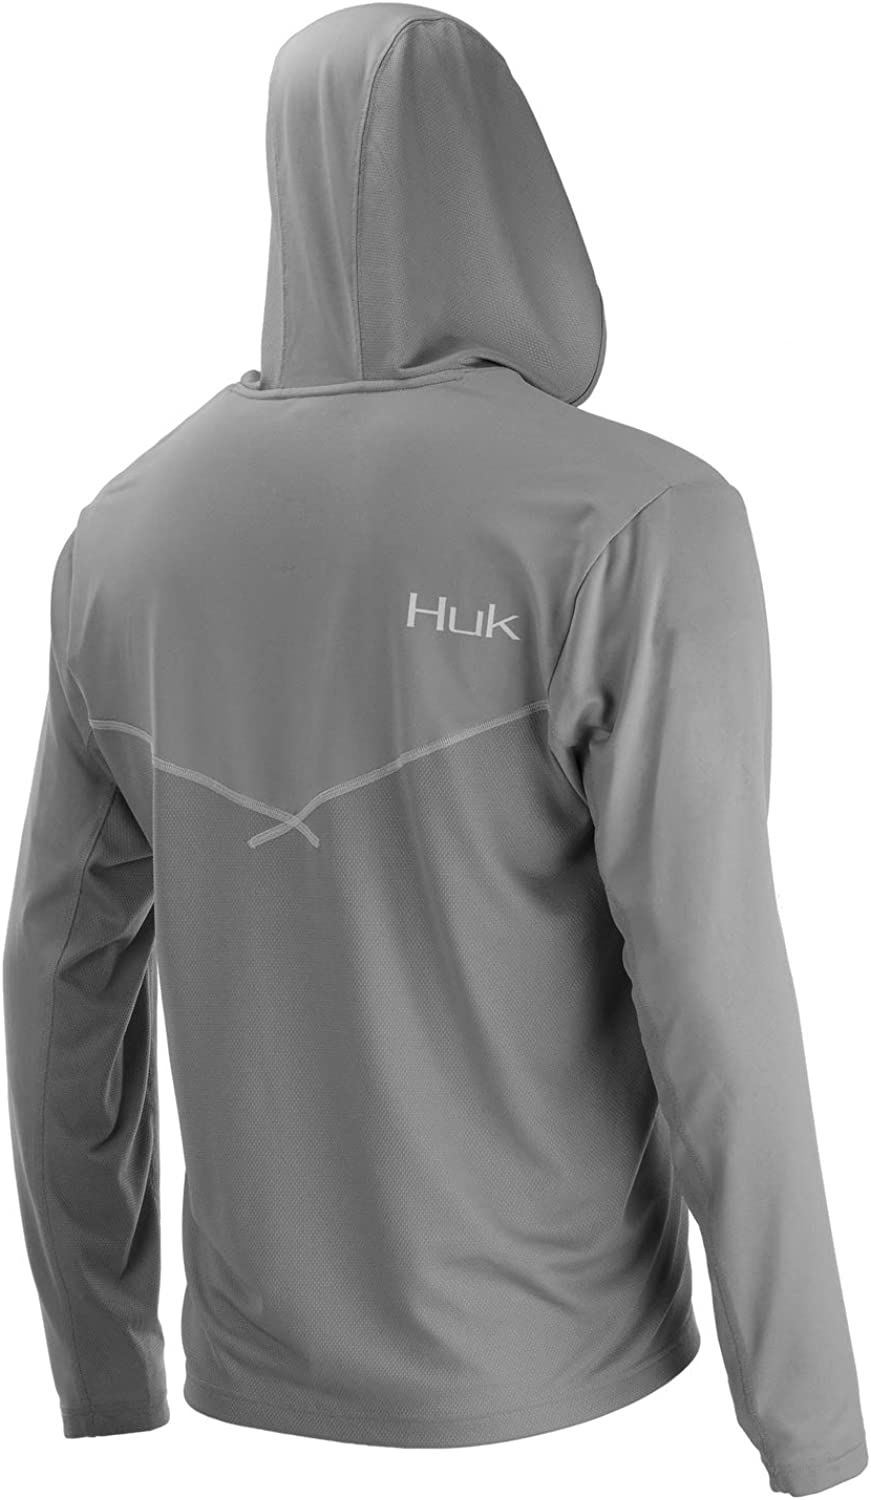 Huk Men's Icon X Hoodie   Long-Sleeve Performance Shirt with UPF 30+ Sun Protection: Clothing